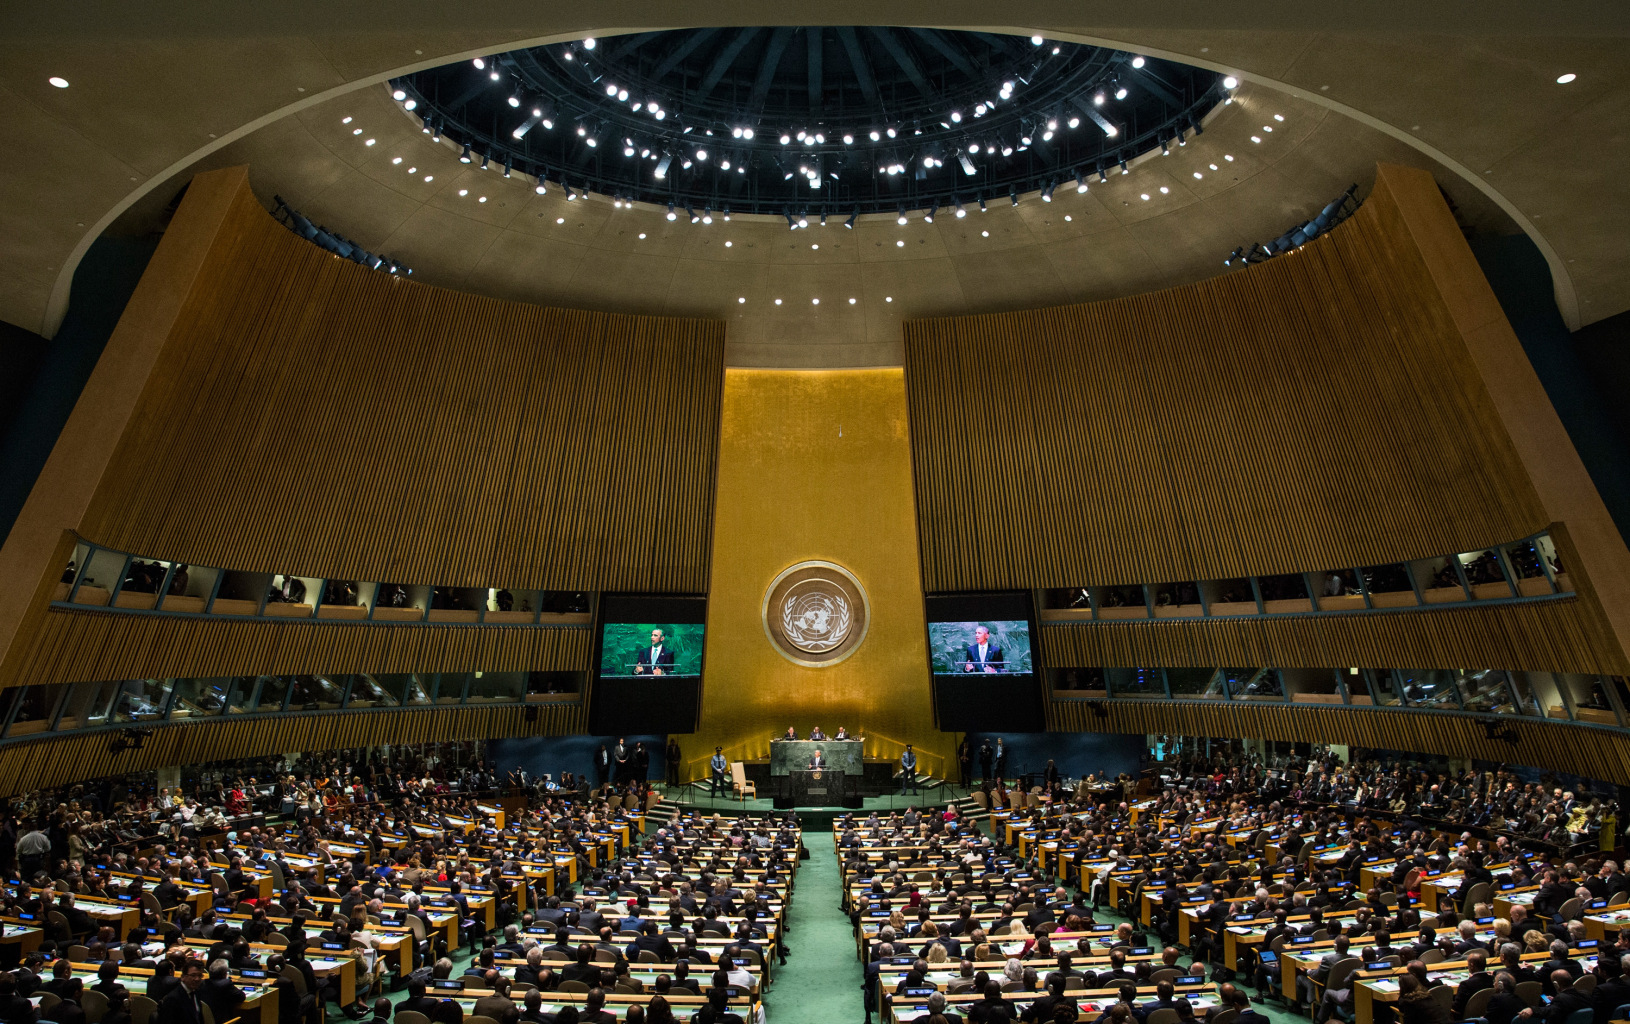 Give Me 5 at the UN General Assembly!